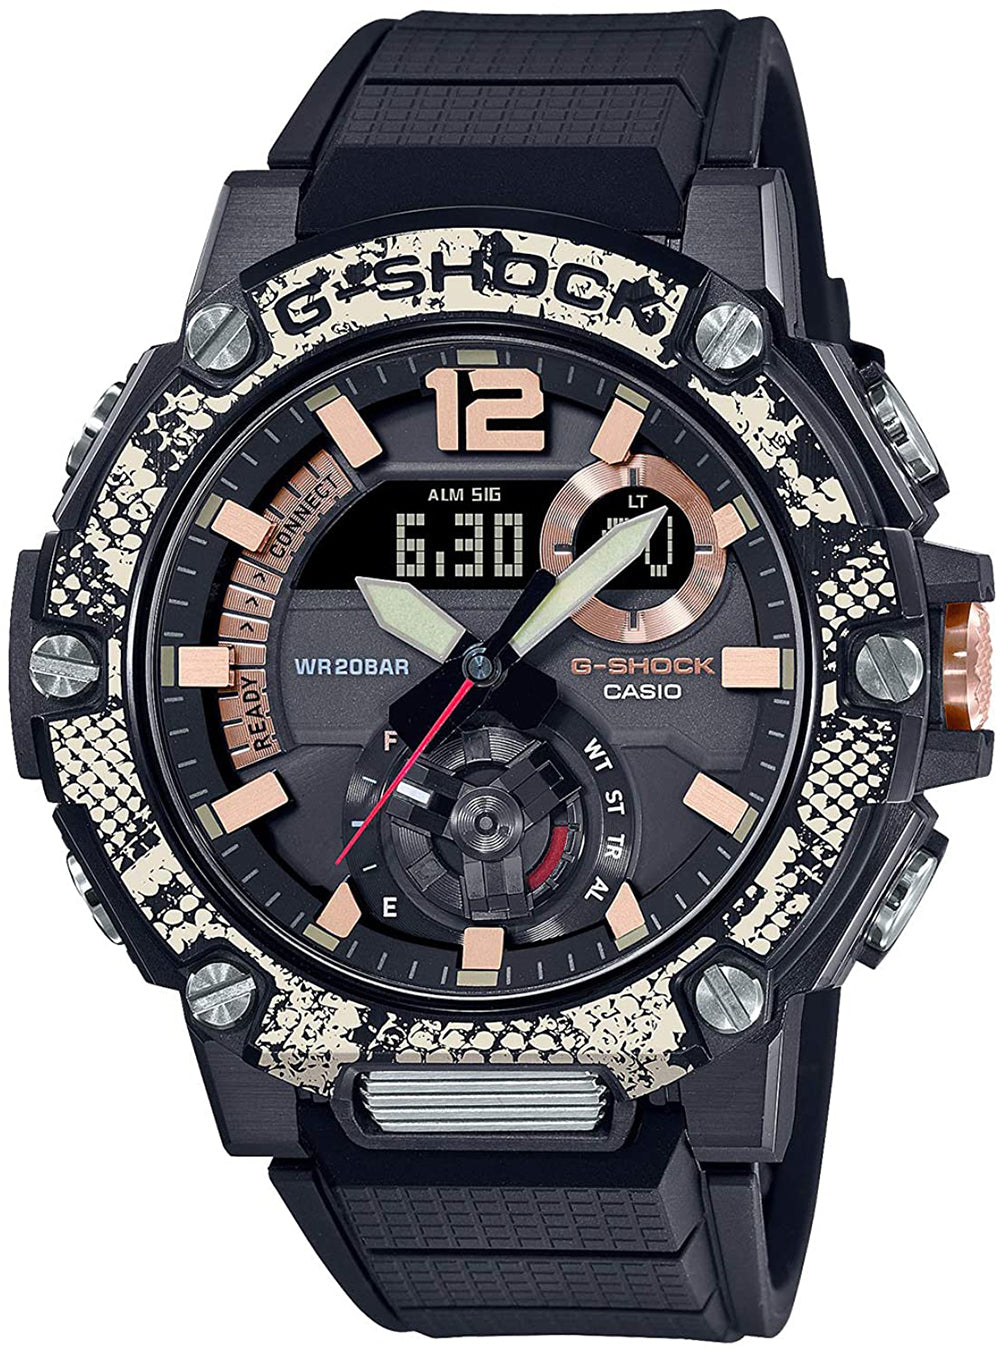 CASIO G-SHOCK G-STEEL LOVE THE SEA AND THE EARTH WILDLIFE PROMISING COLLABORATION MODEL GST-B300WLP-1AJR JDM